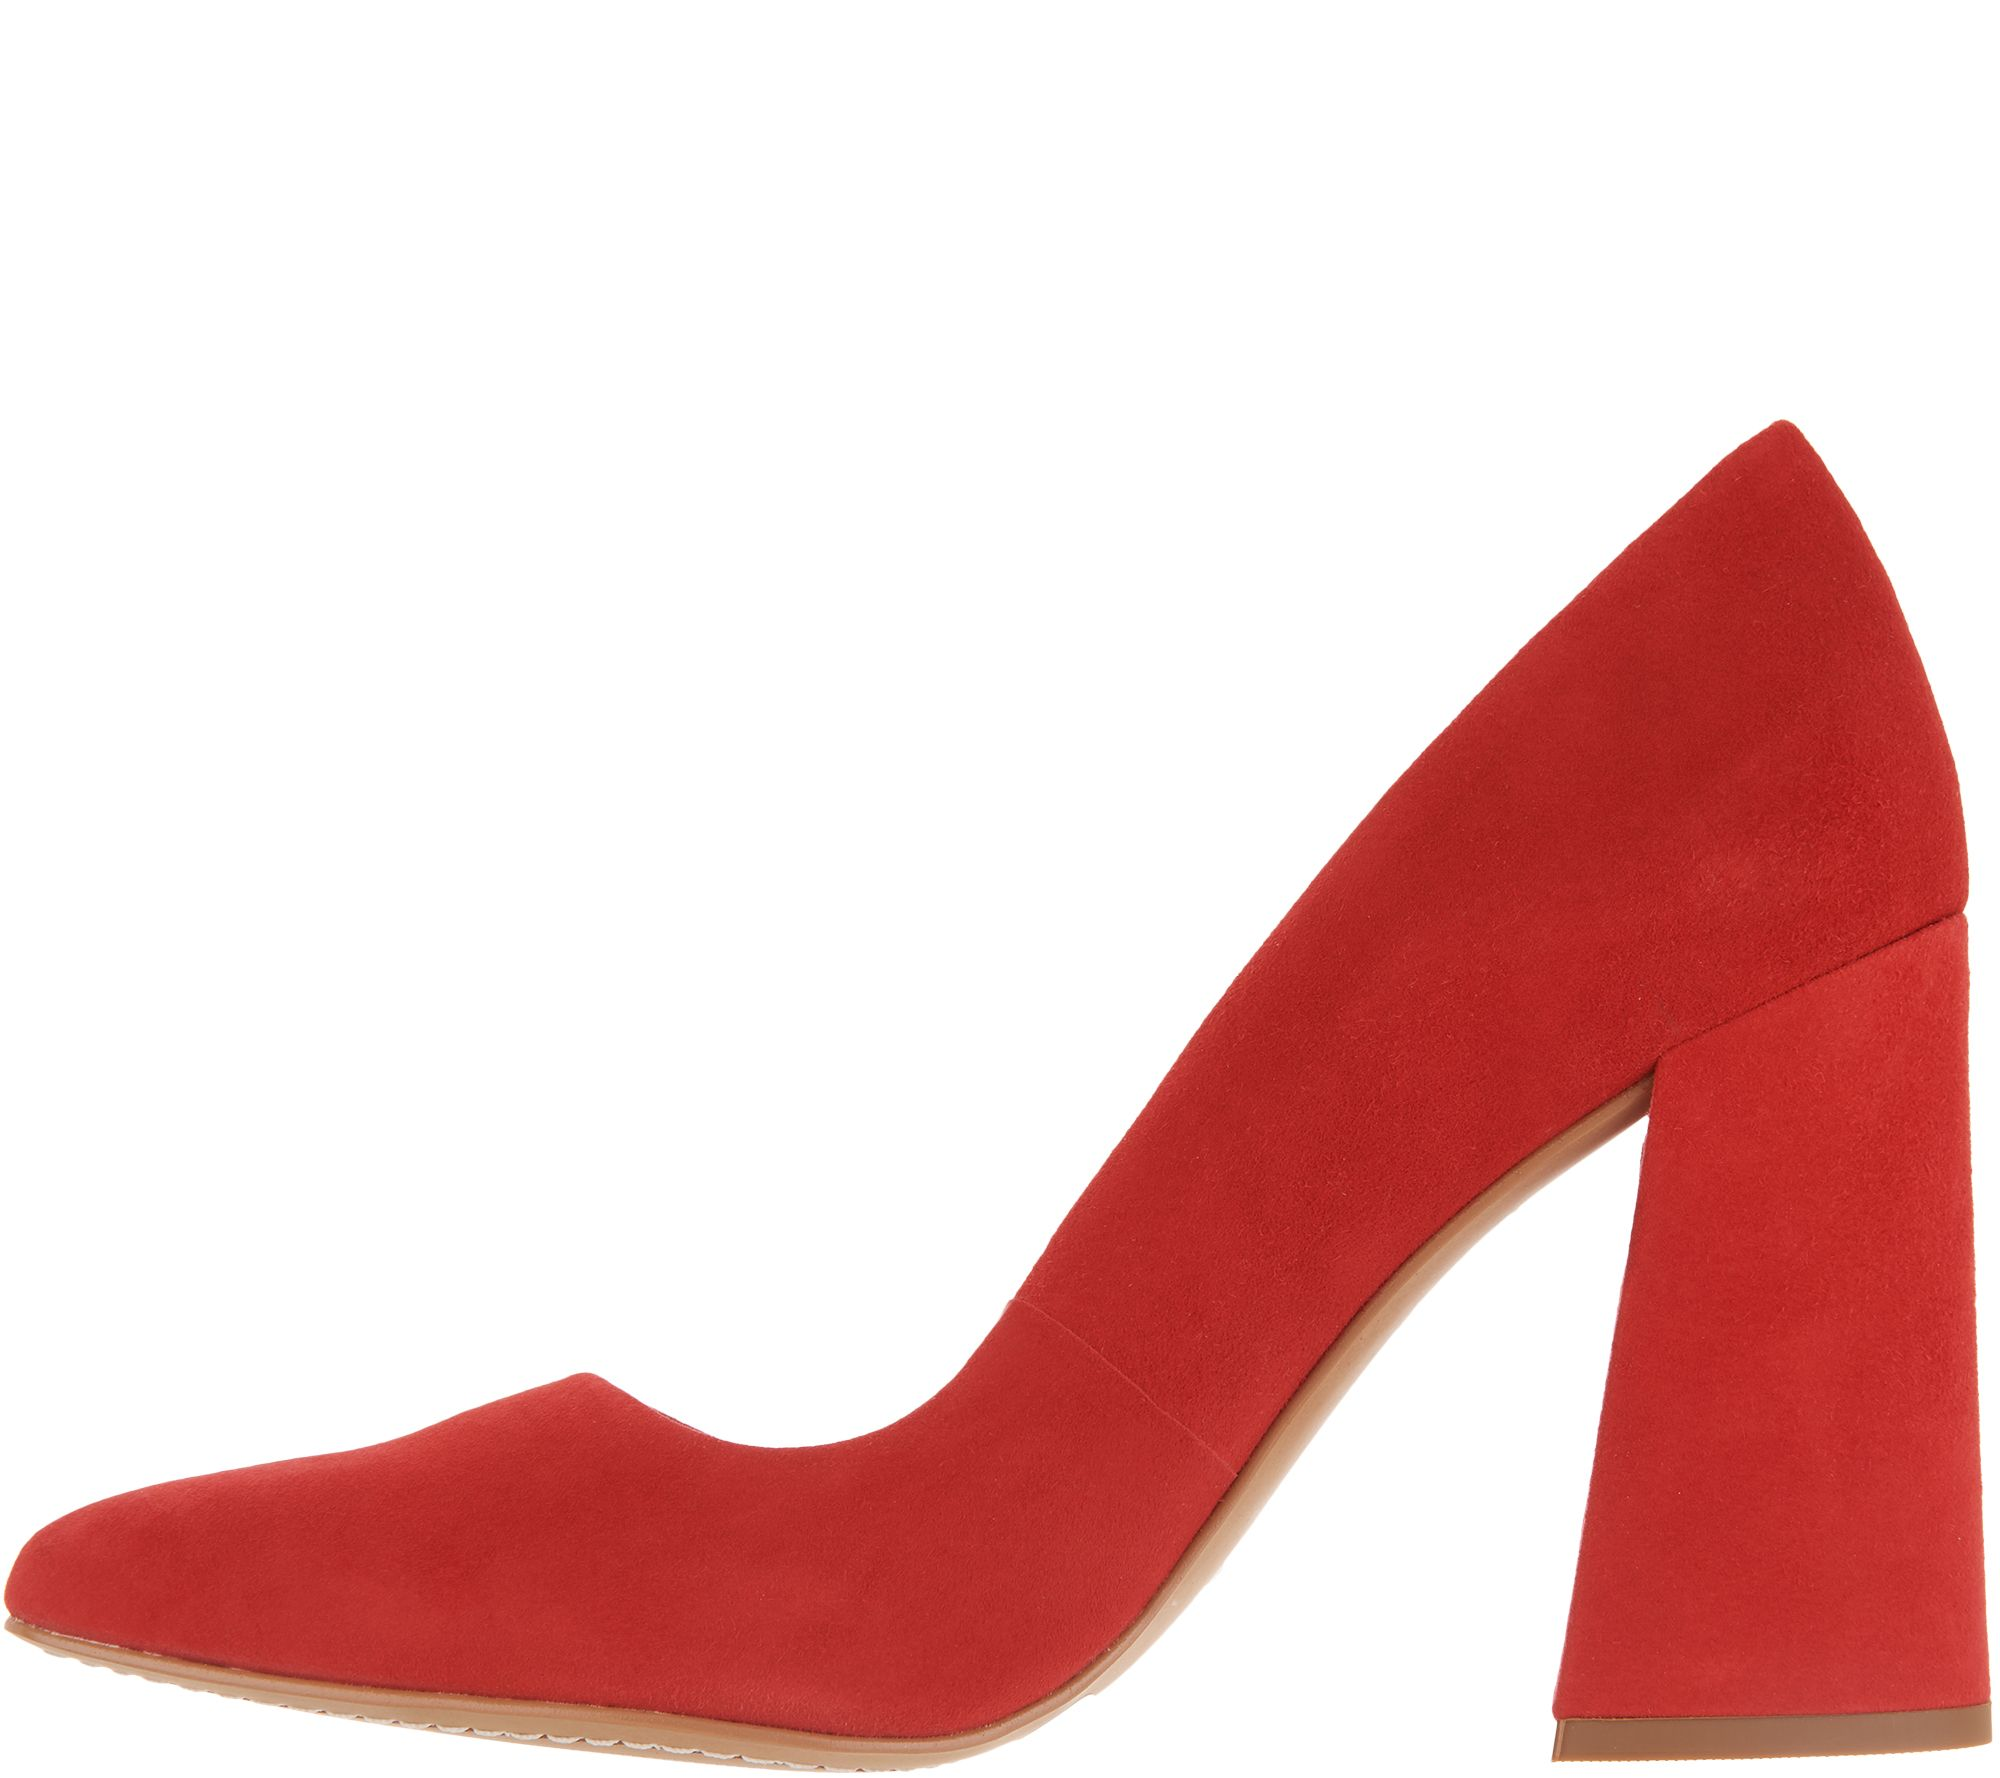 e266067dfee Vince Camuto Suede Pointy Toe Block Heel Pumps - Talise - Page 1 — QVC.com